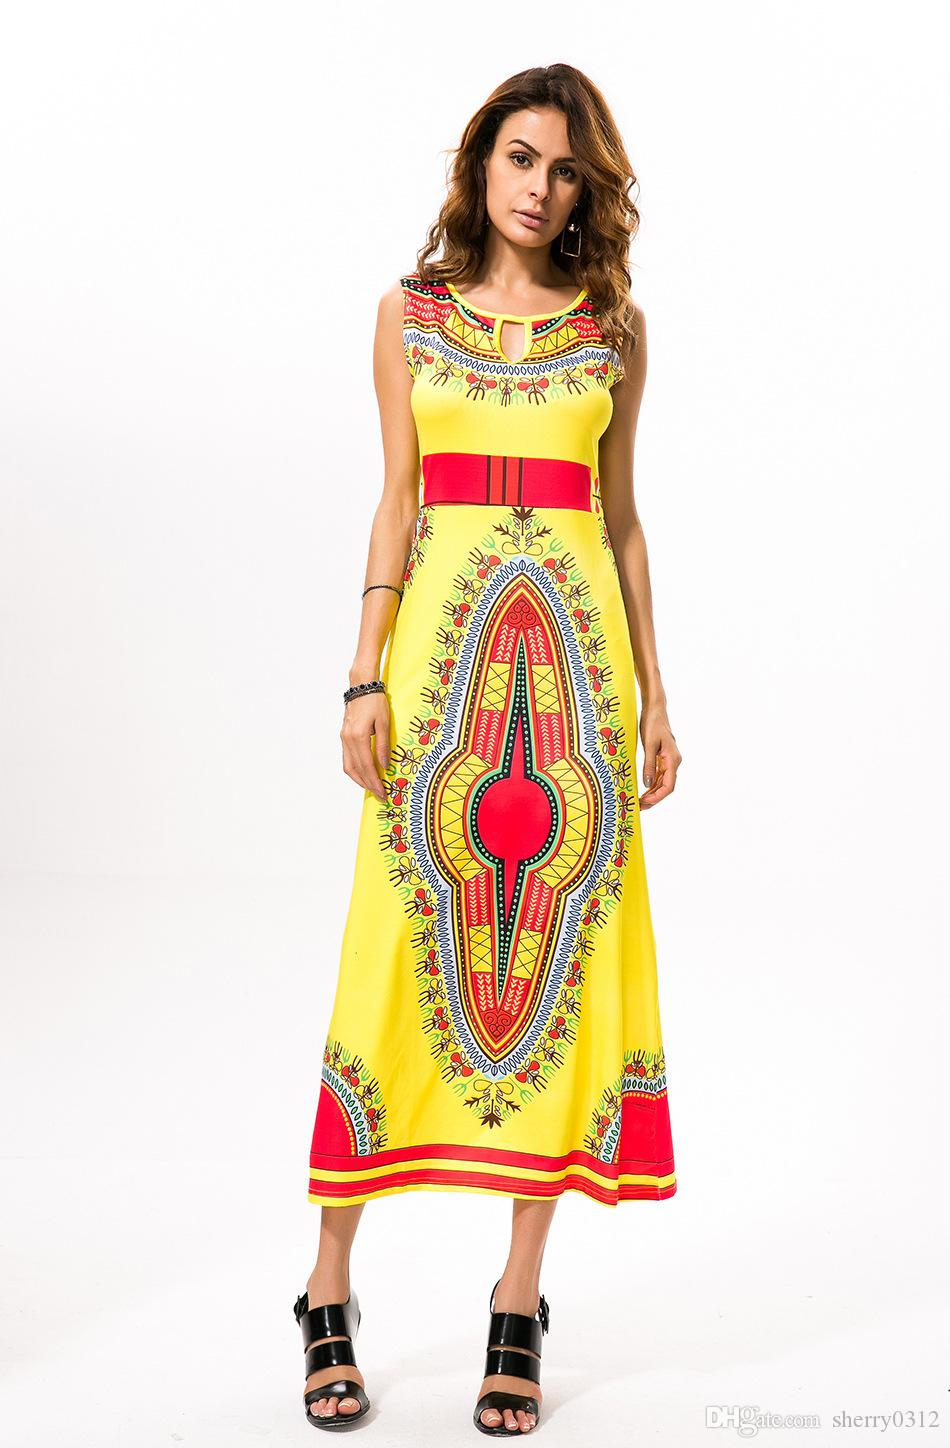 2017 New Bohemian Dress African Women Ethnic Traditional Clothes Print Dashiki Dress For Lady Vintage Thailand Indian Summer Dress Yellow